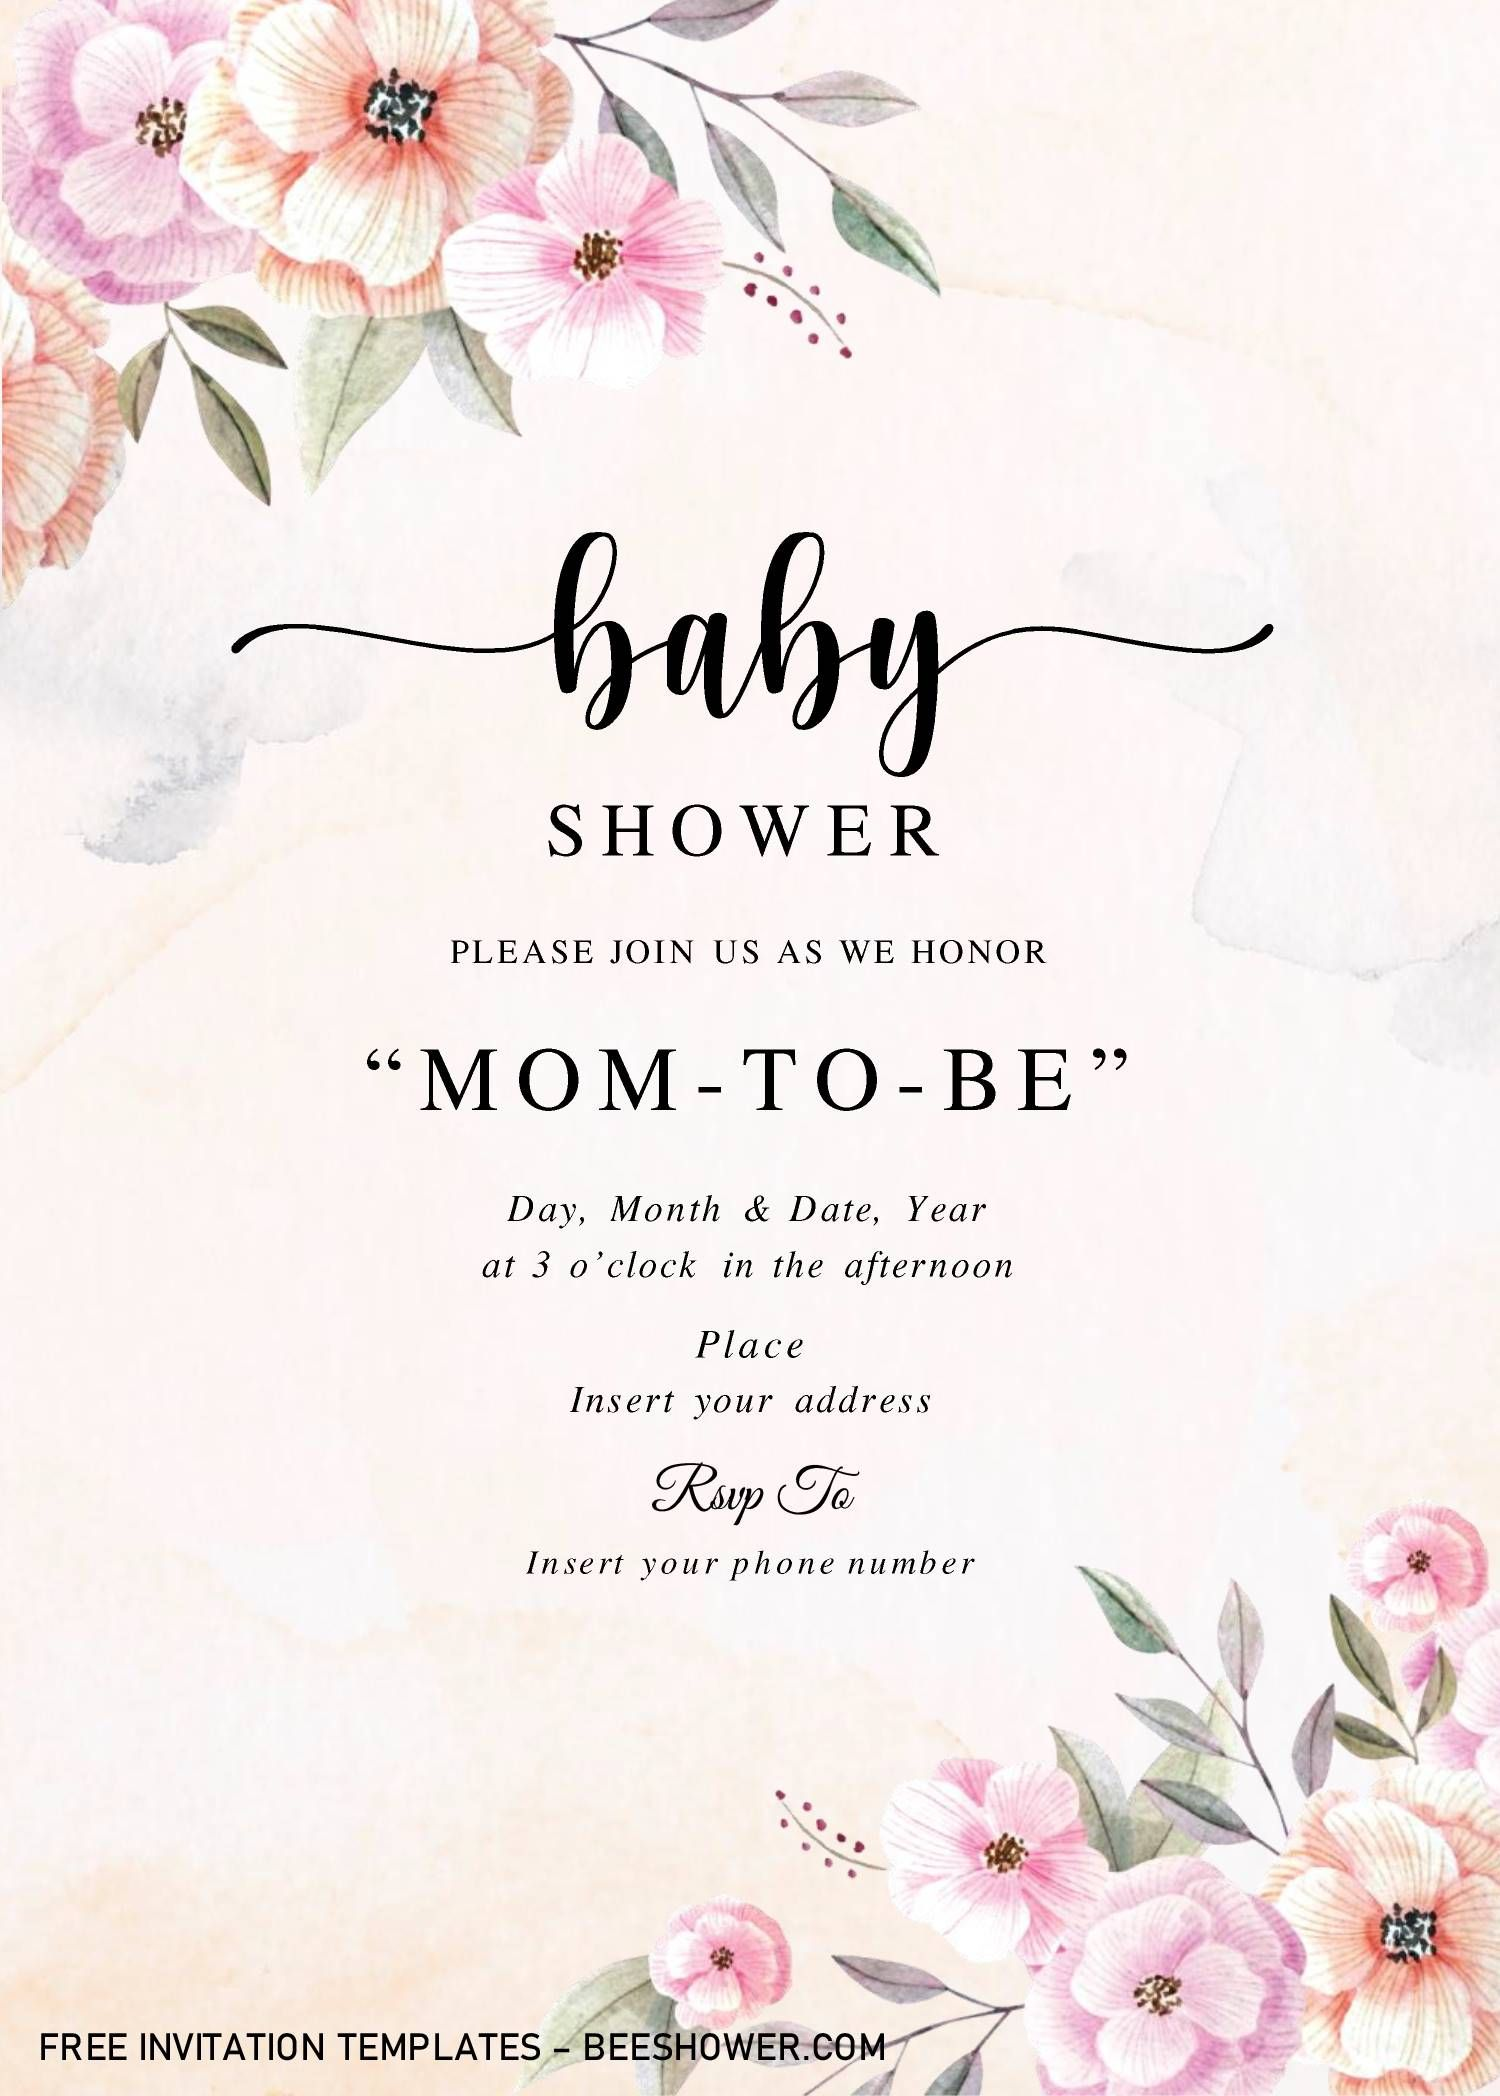 Rustic Floral Baby Shower Invitation Templates Editable With Microso Free Baby Shower Invitations Baby Shower Invitation Cards Floral Baby Shower Invitations Baby shower invitation template word